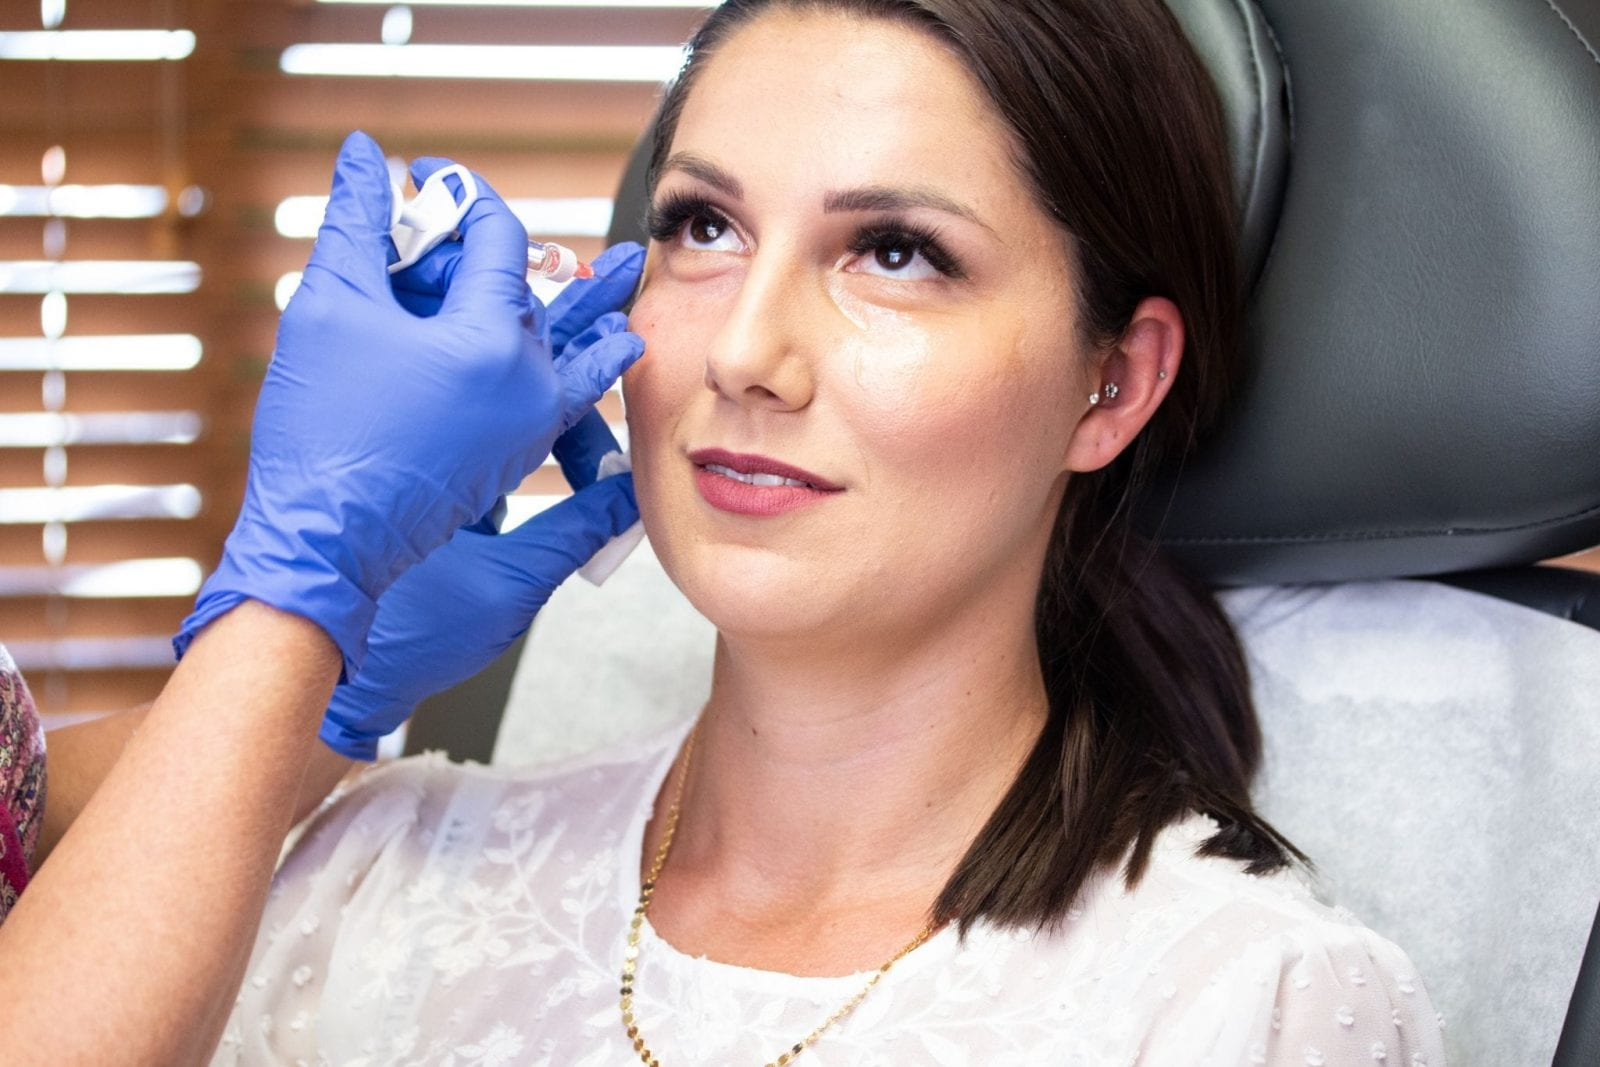 This is a great capture (bright lighting) with the hyaluronic acid filler in action.